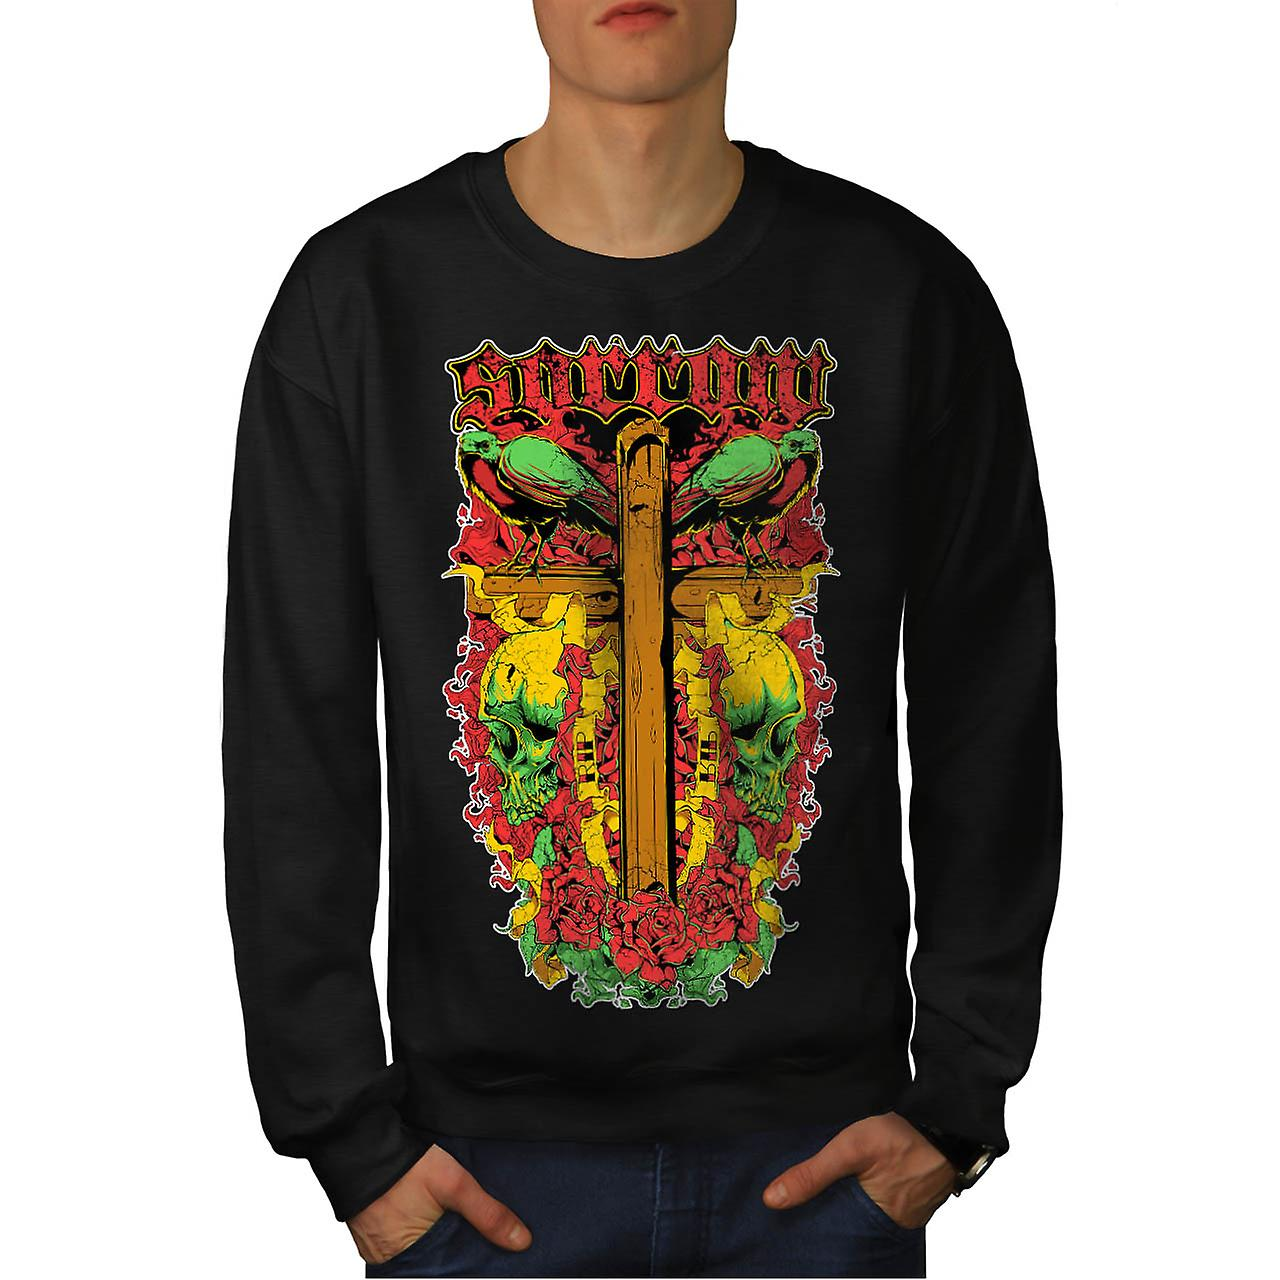 Sorrow Vintage Fantasy Men Black Sweatshirt | Wellcoda